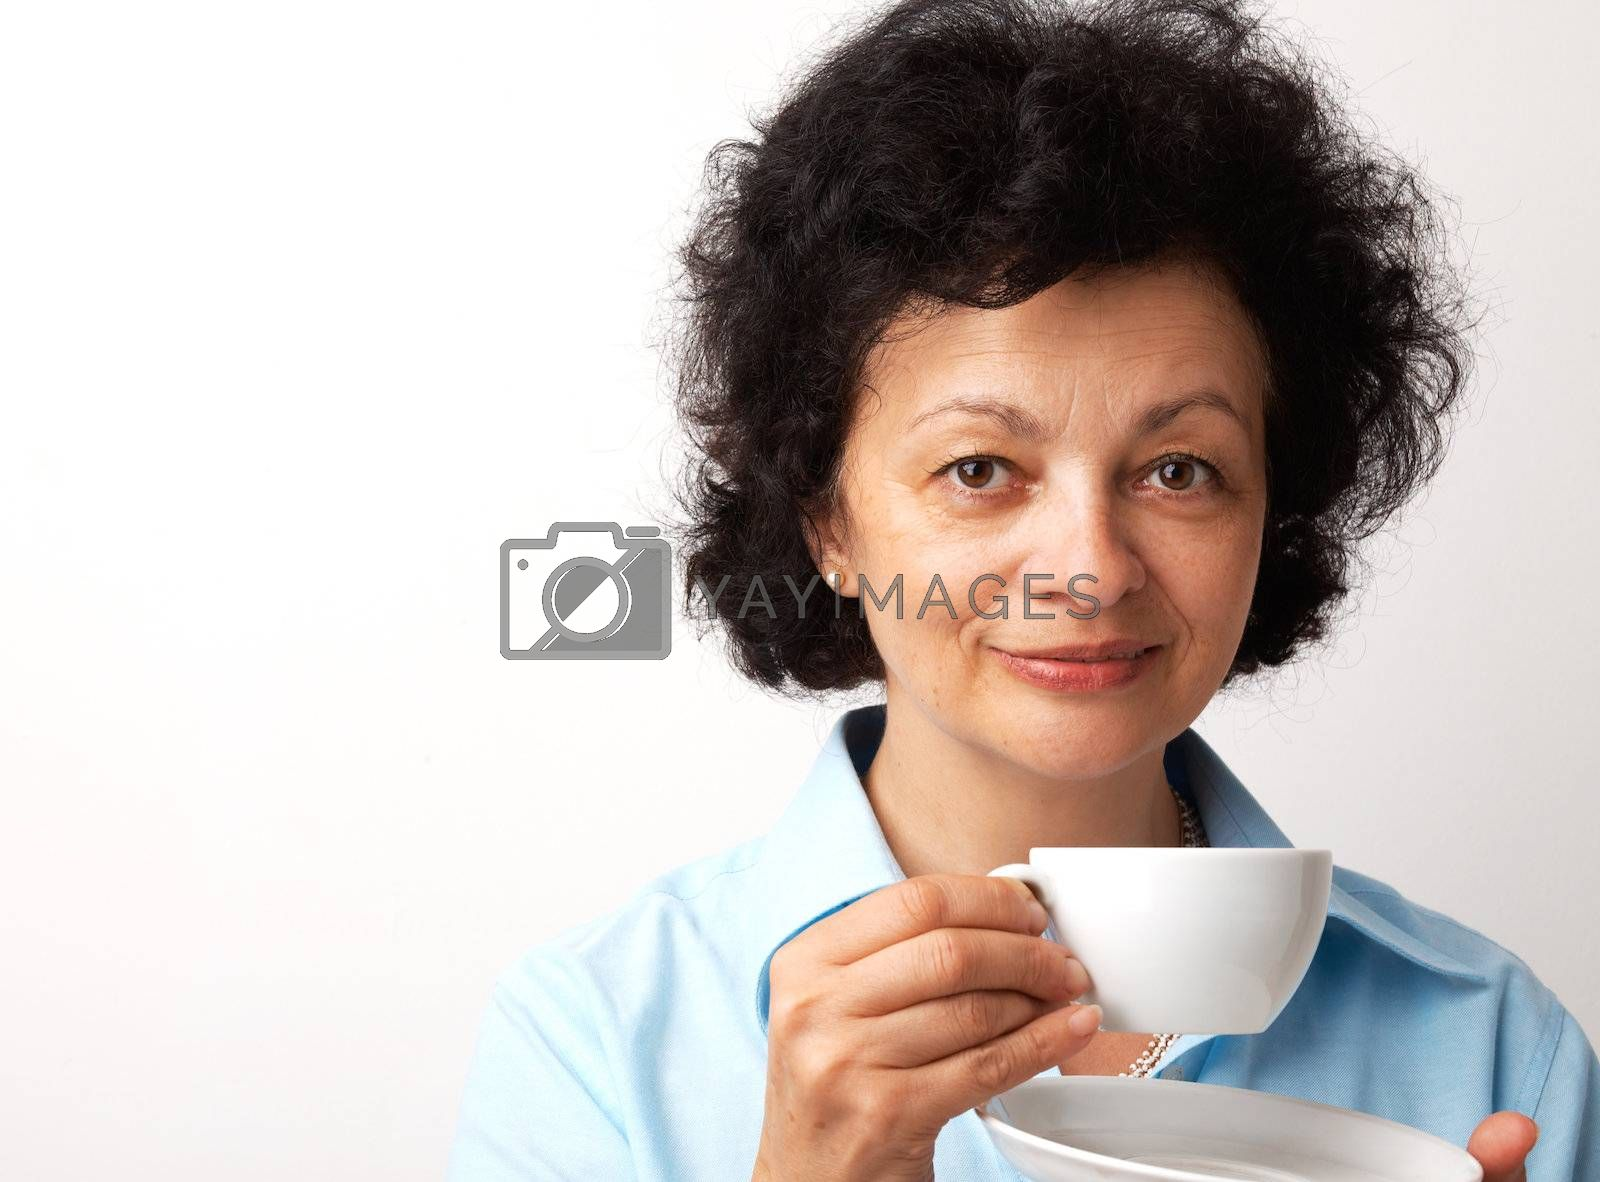 Close-up portrait of an elder smiling woman holding cup and saucer.